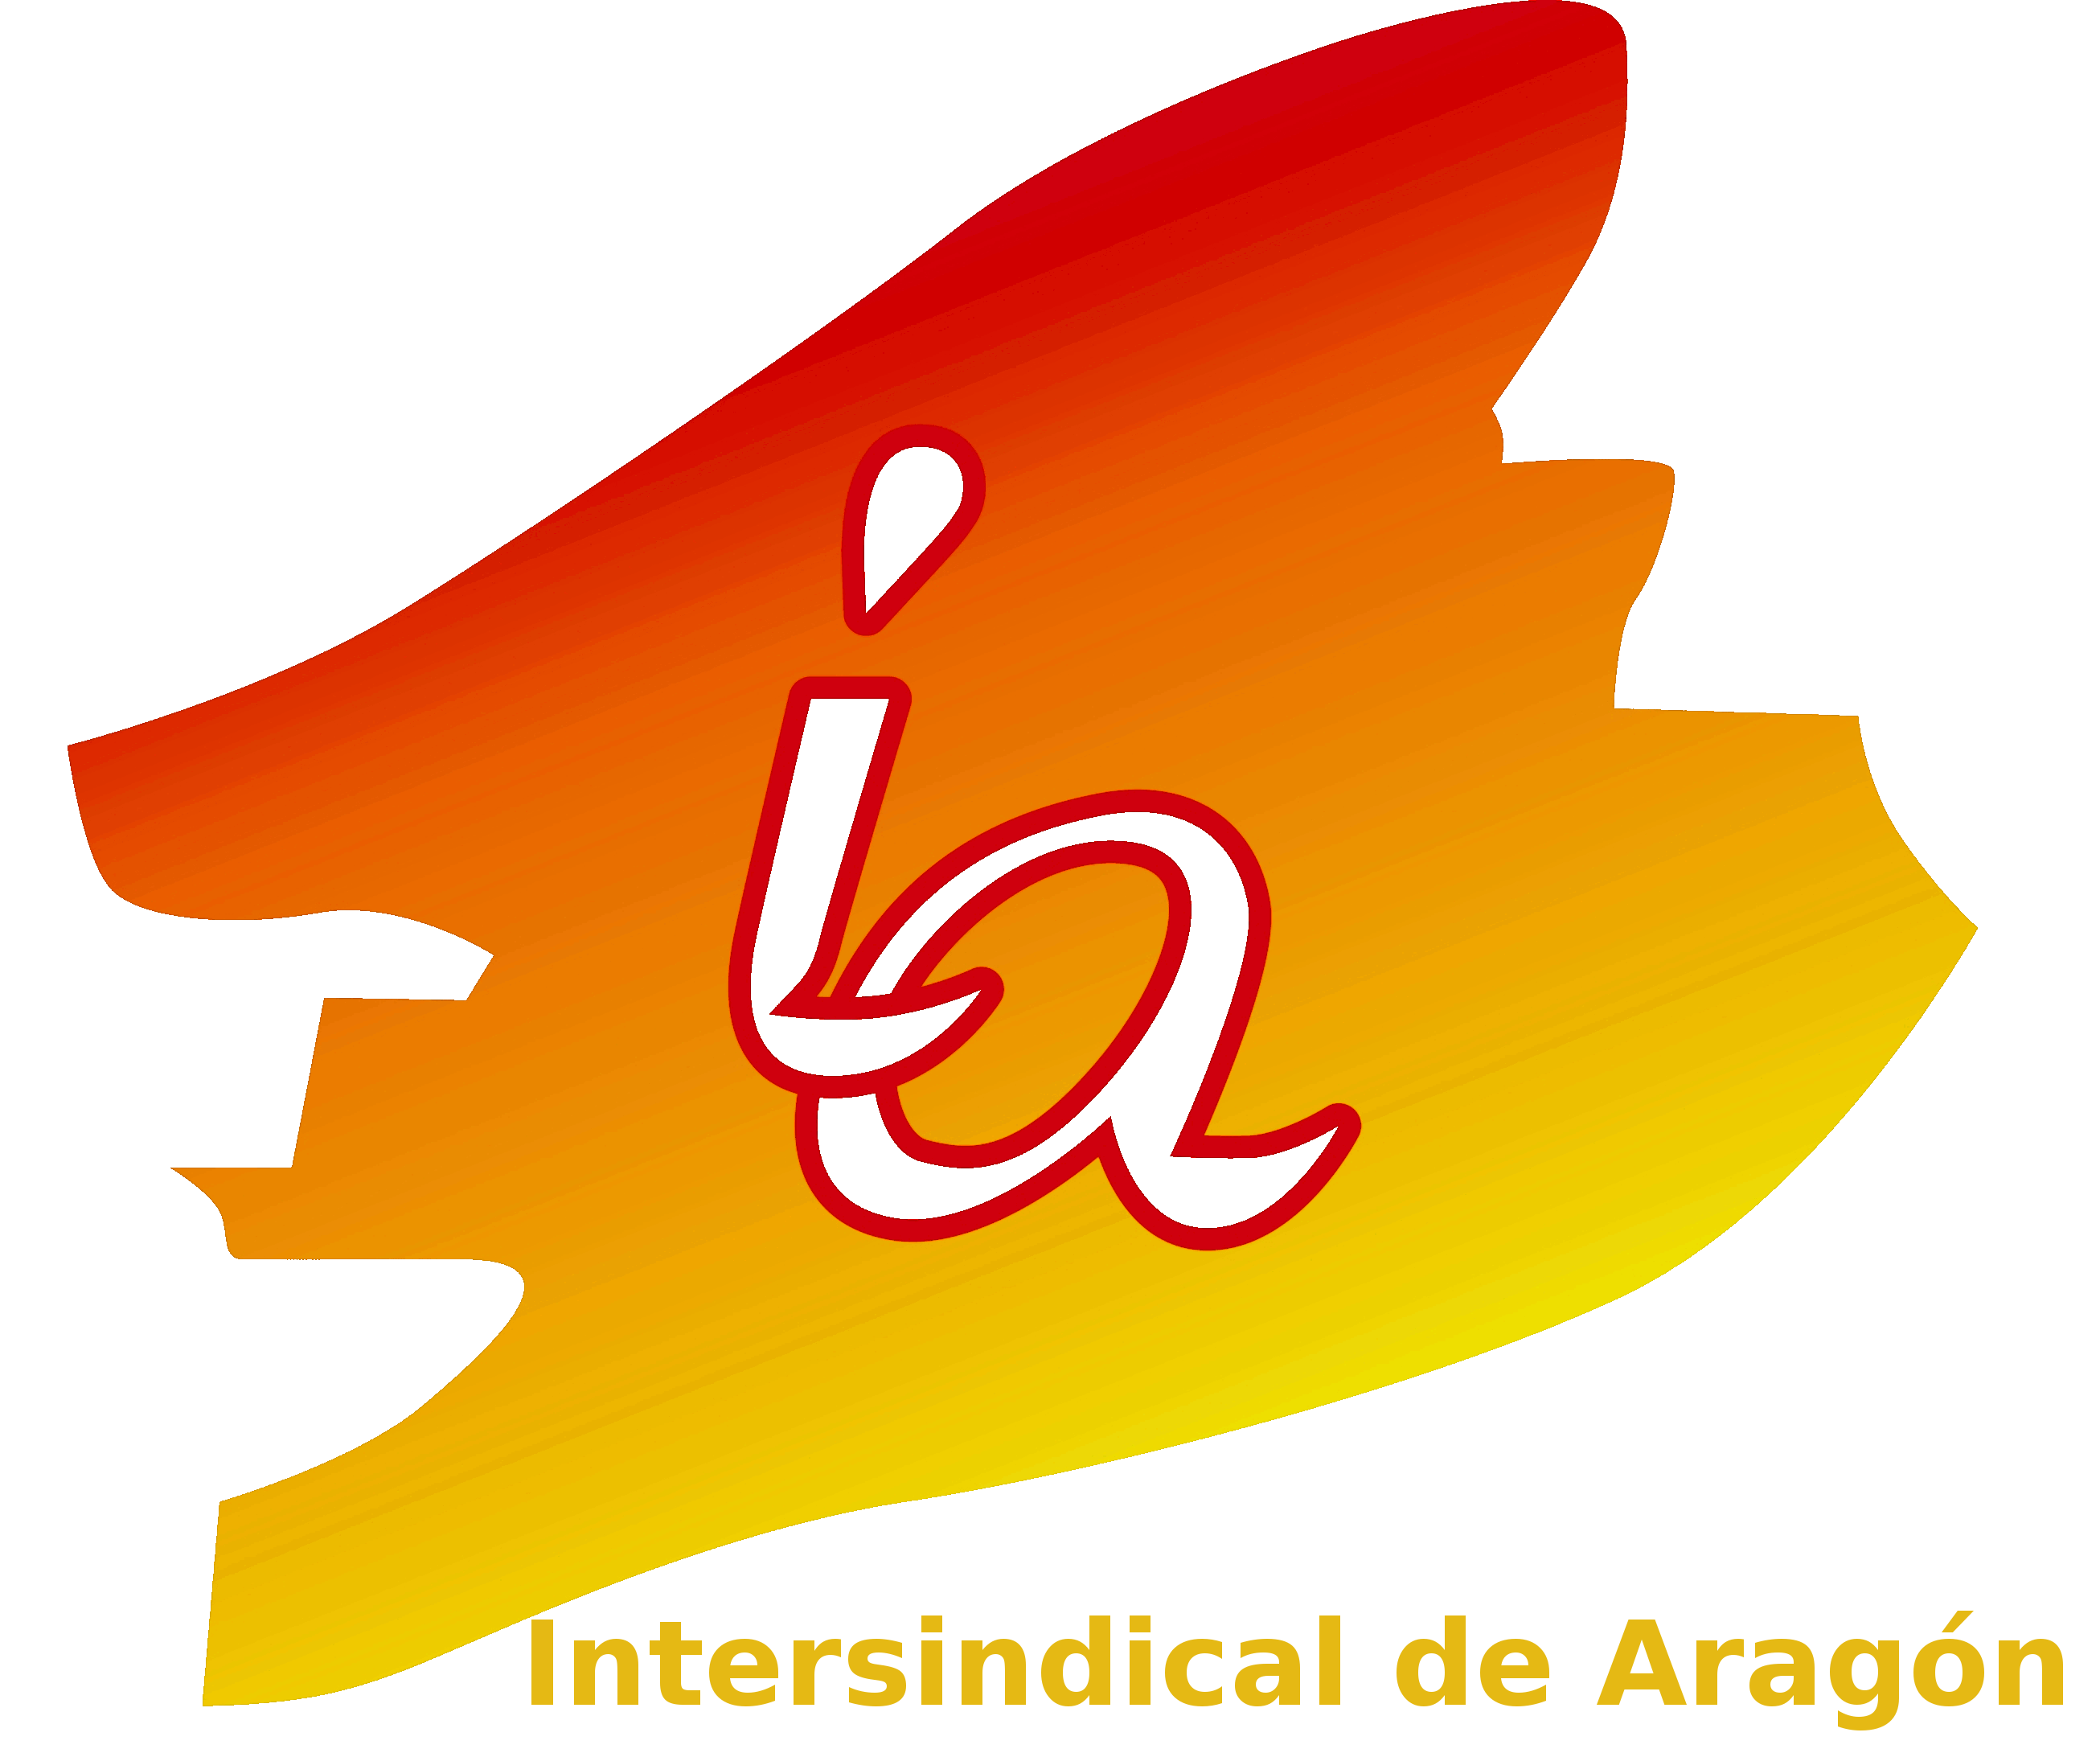 INTERSINDICAL DE ARAGON – INTERSINDICAL DE ARAGÓN